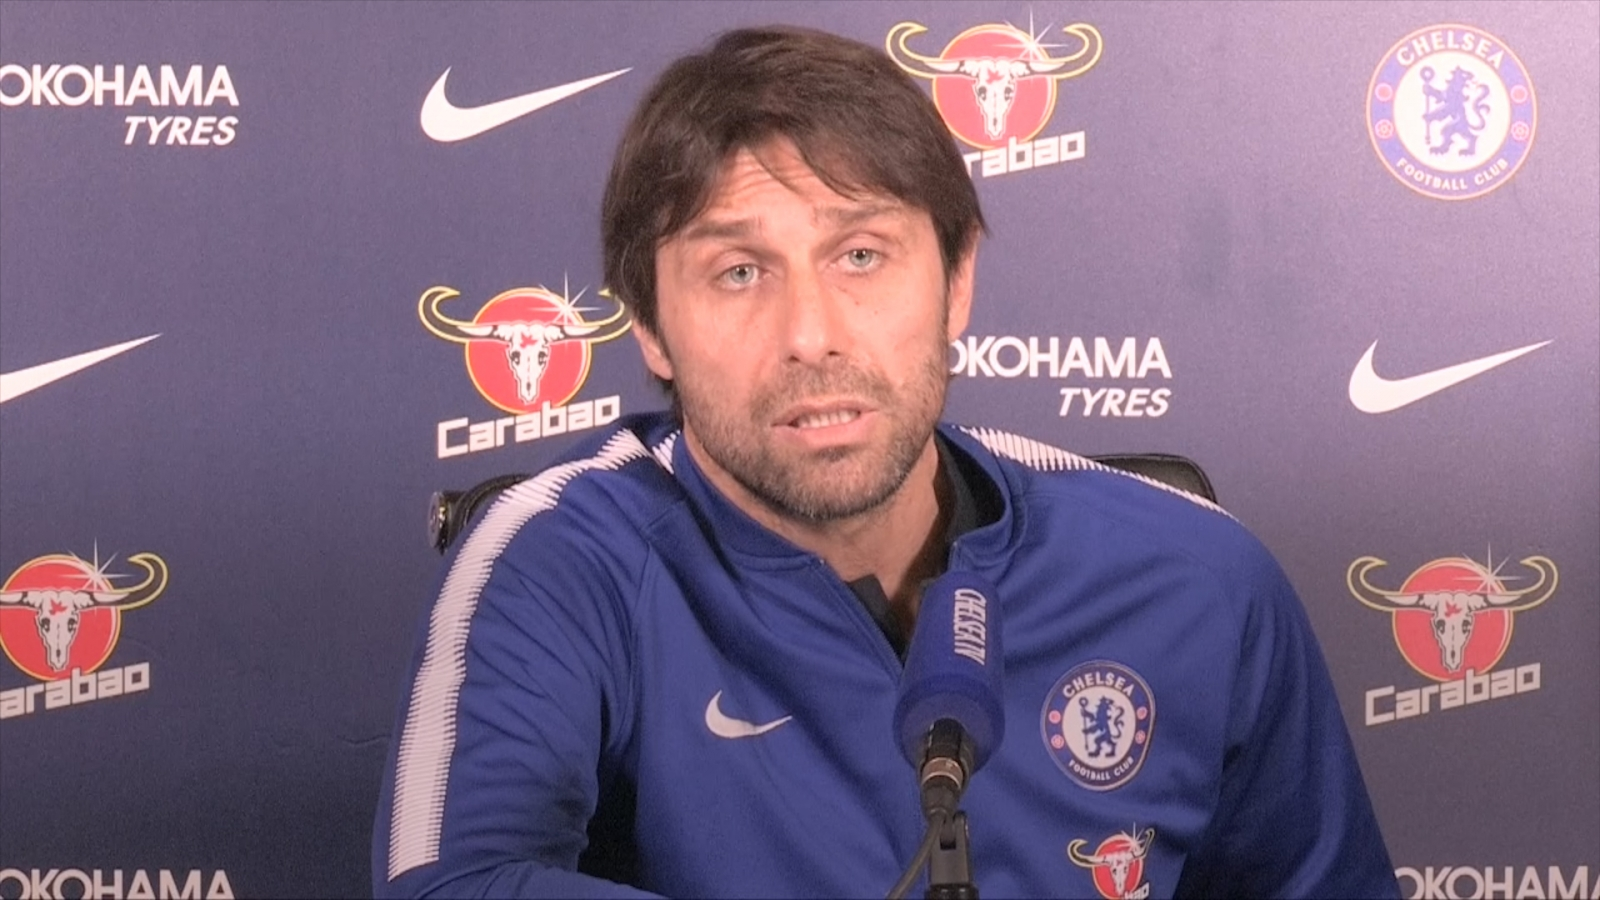 antonio-conte-insists-he-will-stay-in-charge-at-chelsea